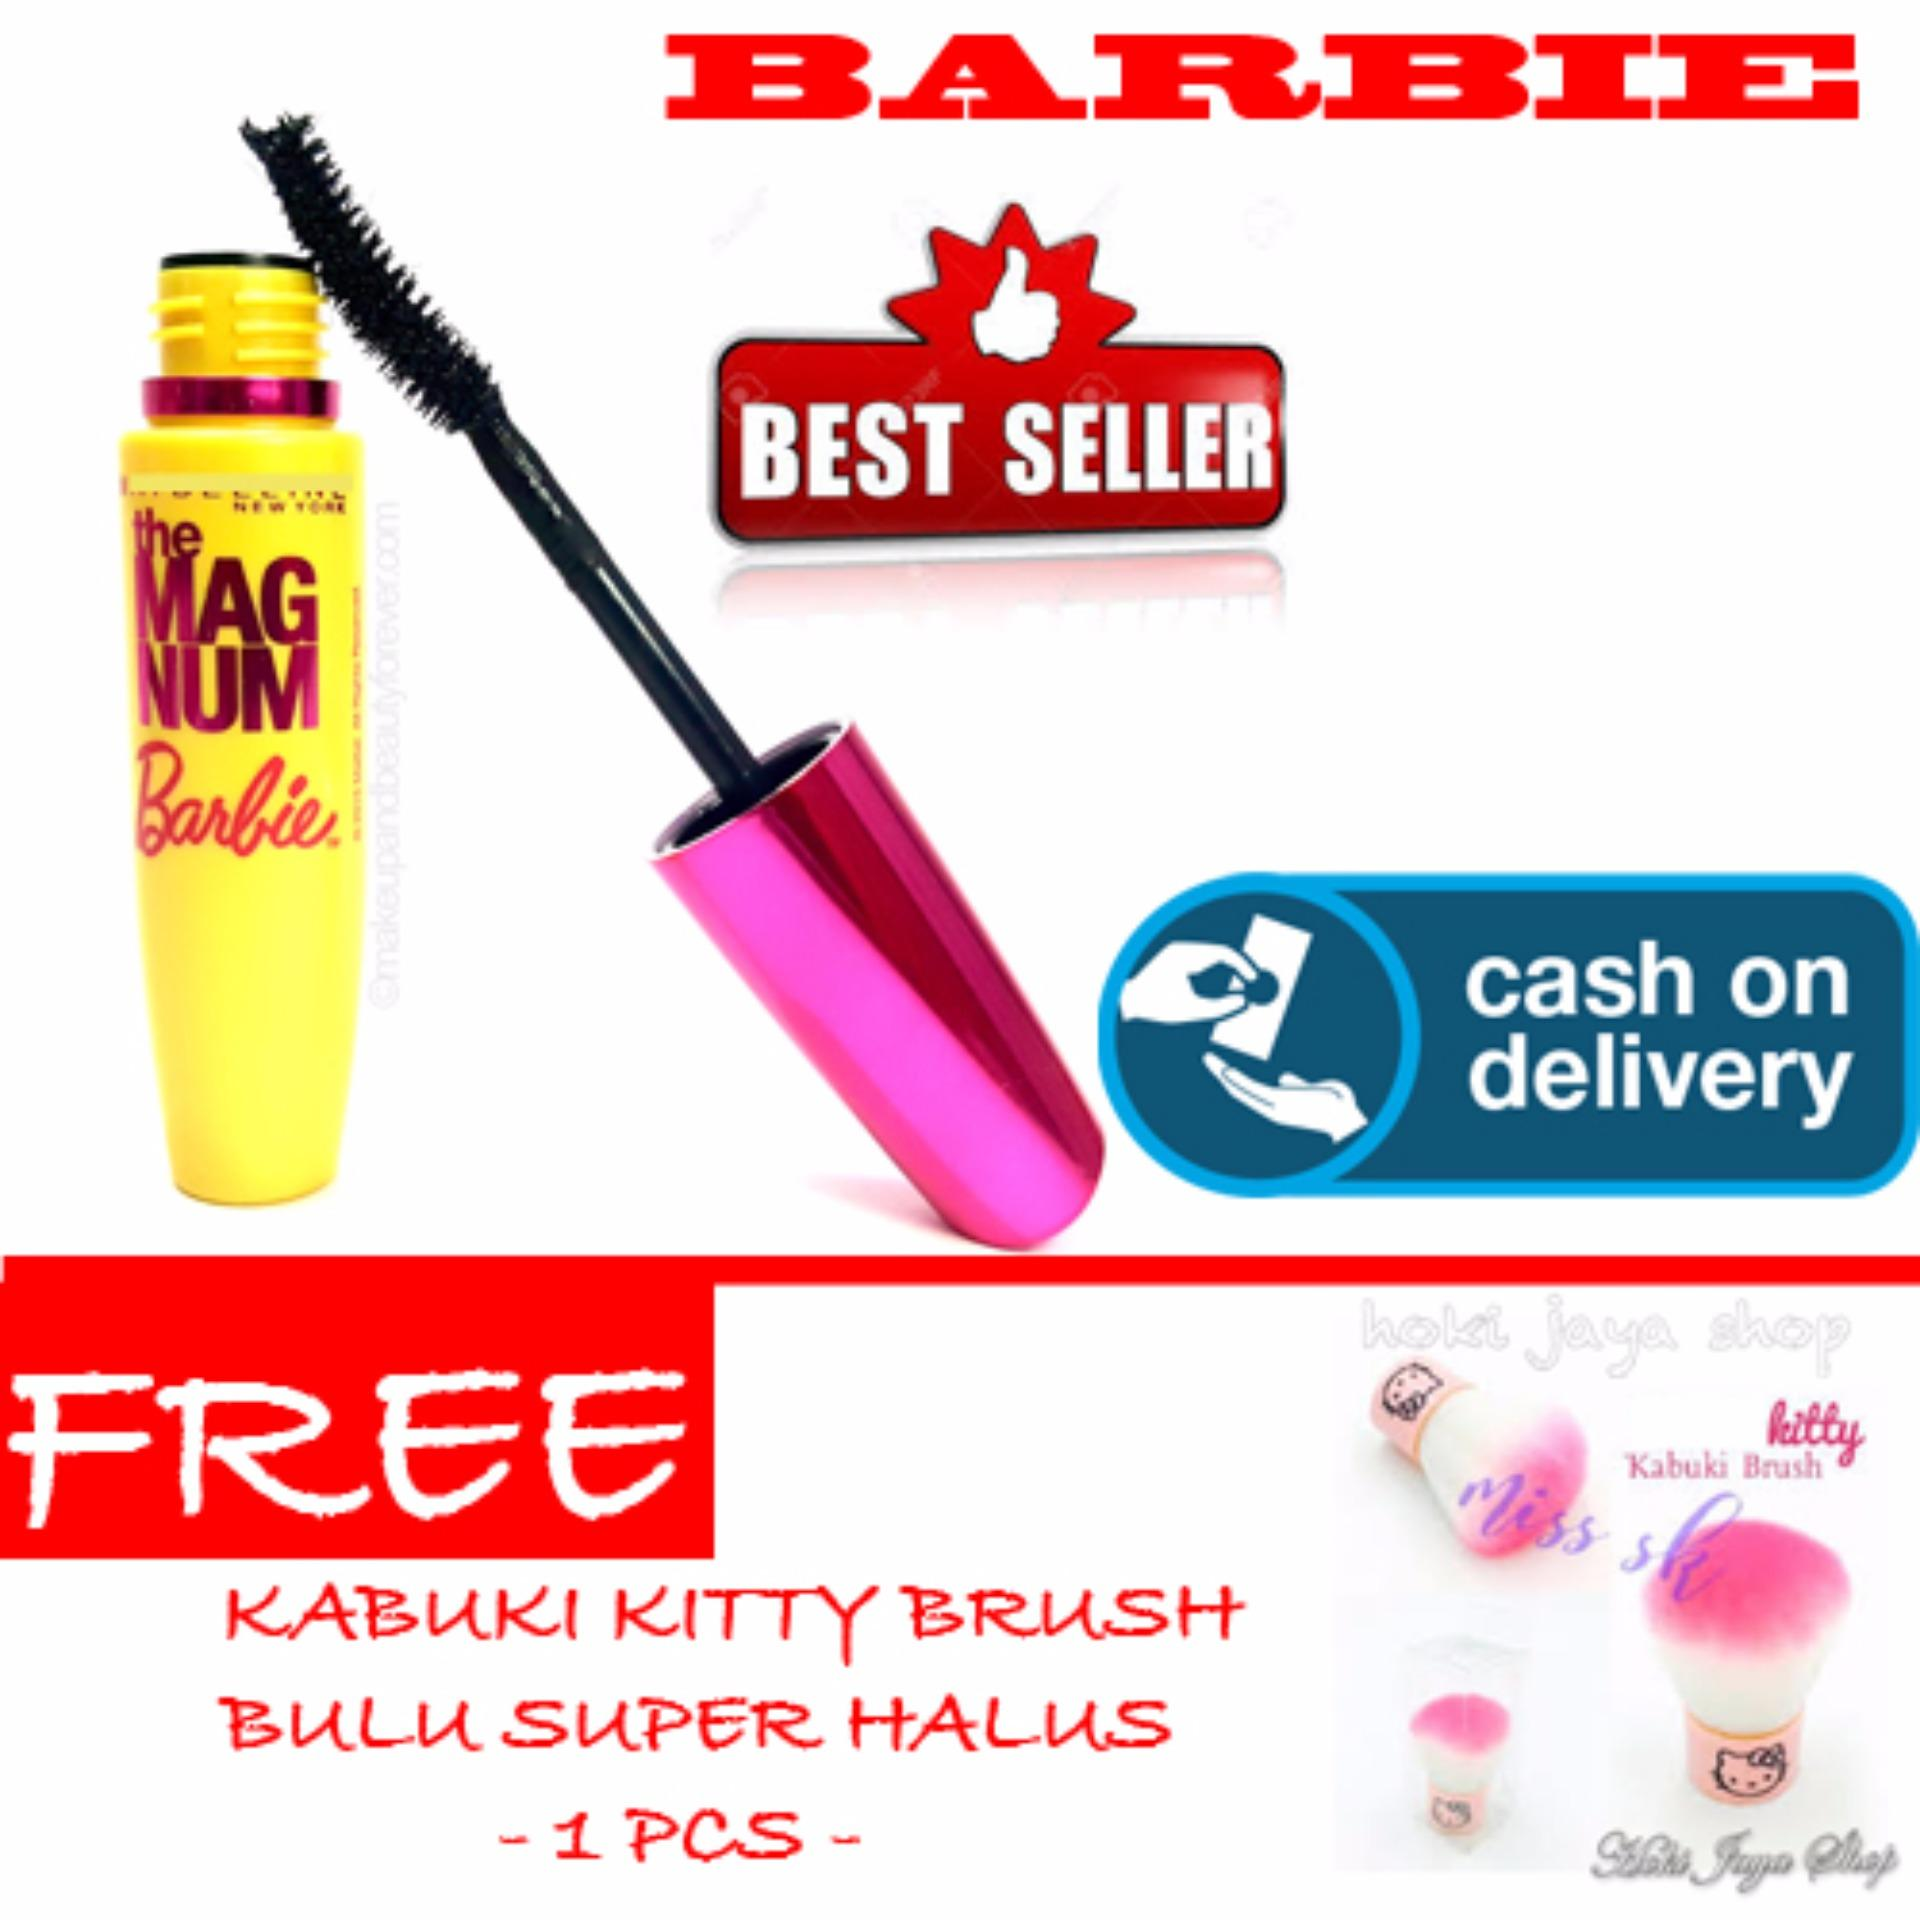 HOKI COD - Mascara Magnum Barbie - Maskara Waterproof - Model Barbie  Warna Hitam Premium Quality Top - Made In China - 1 Pcs + Gratis Kabuki Kitty Brush Bulu Super Halus Dan Model Unik - 1 Pcs